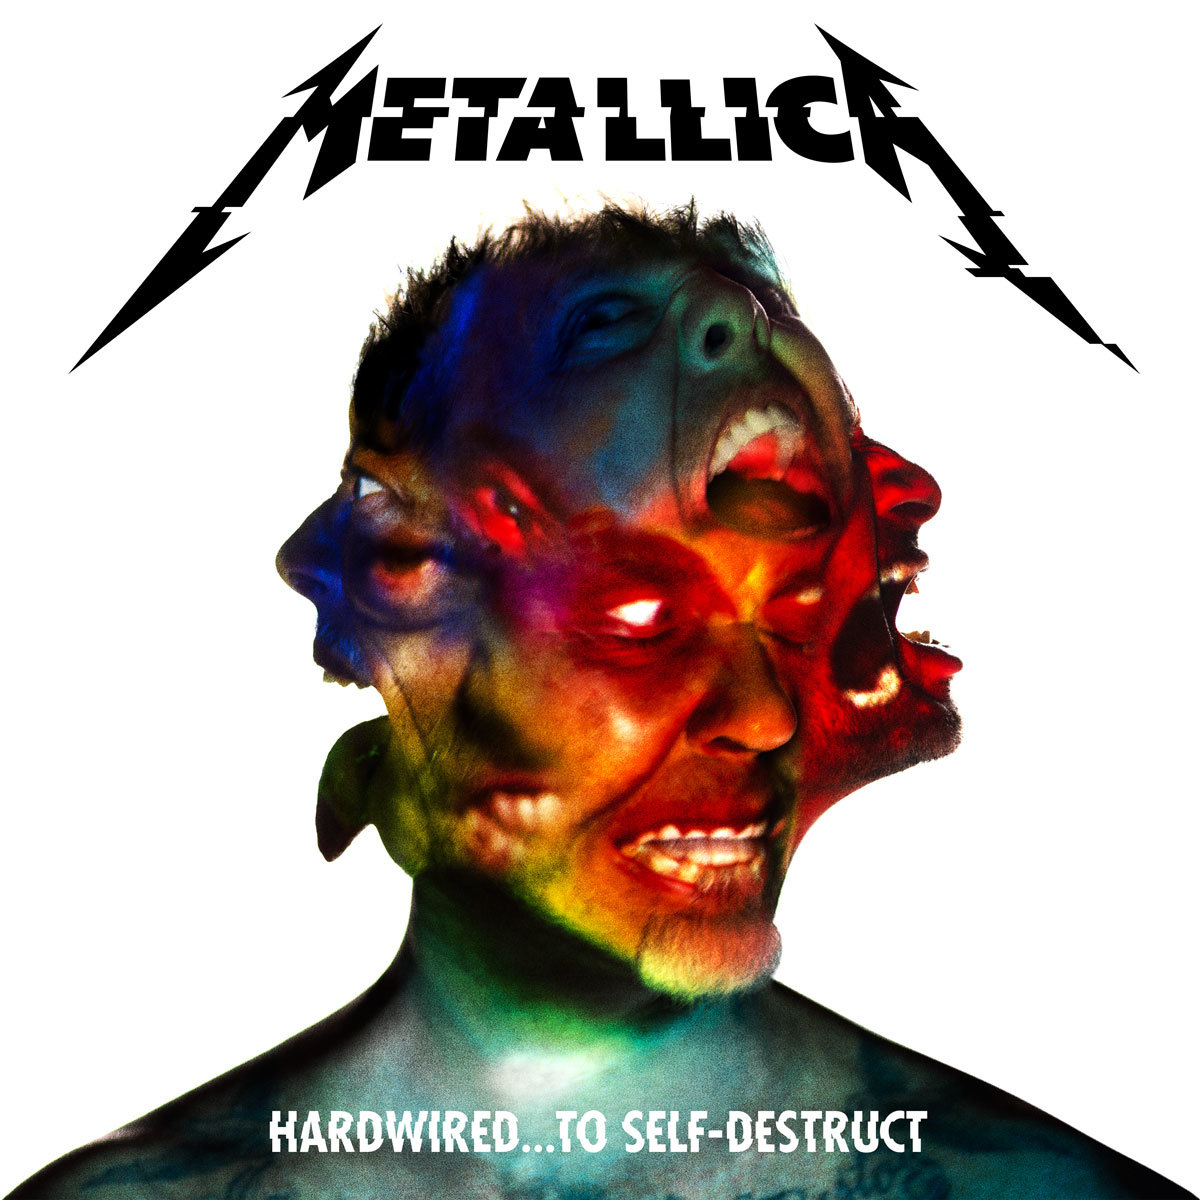 metallica hardwired album cover